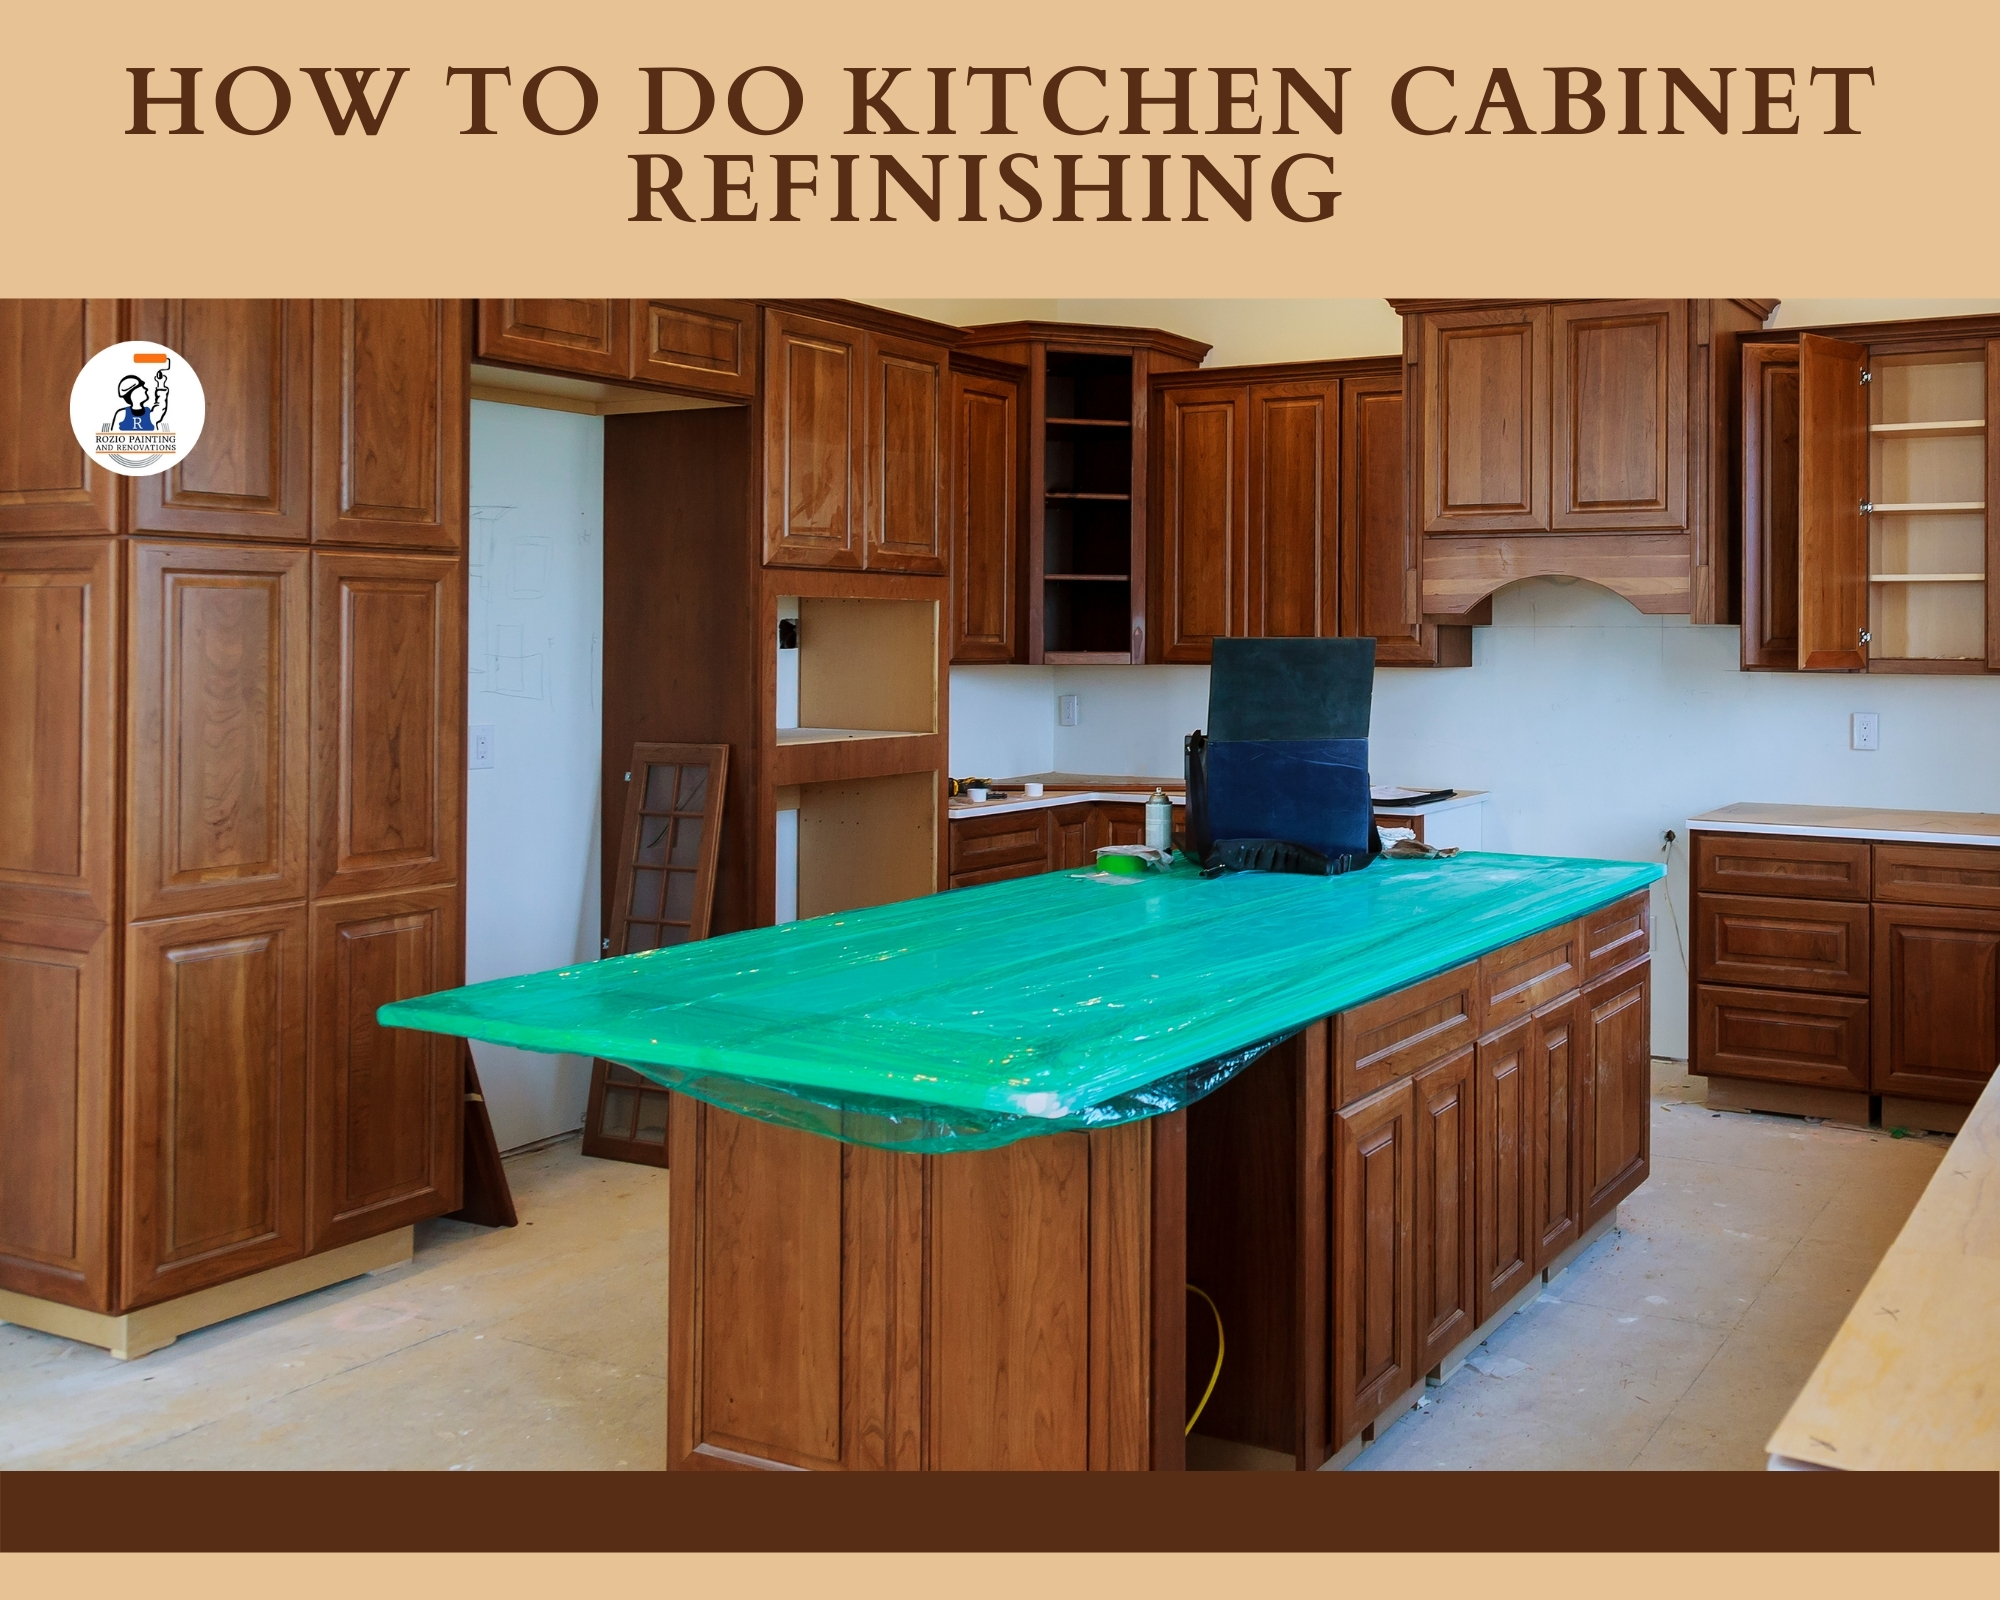 How to do Kitchen Cabinet Refinishing